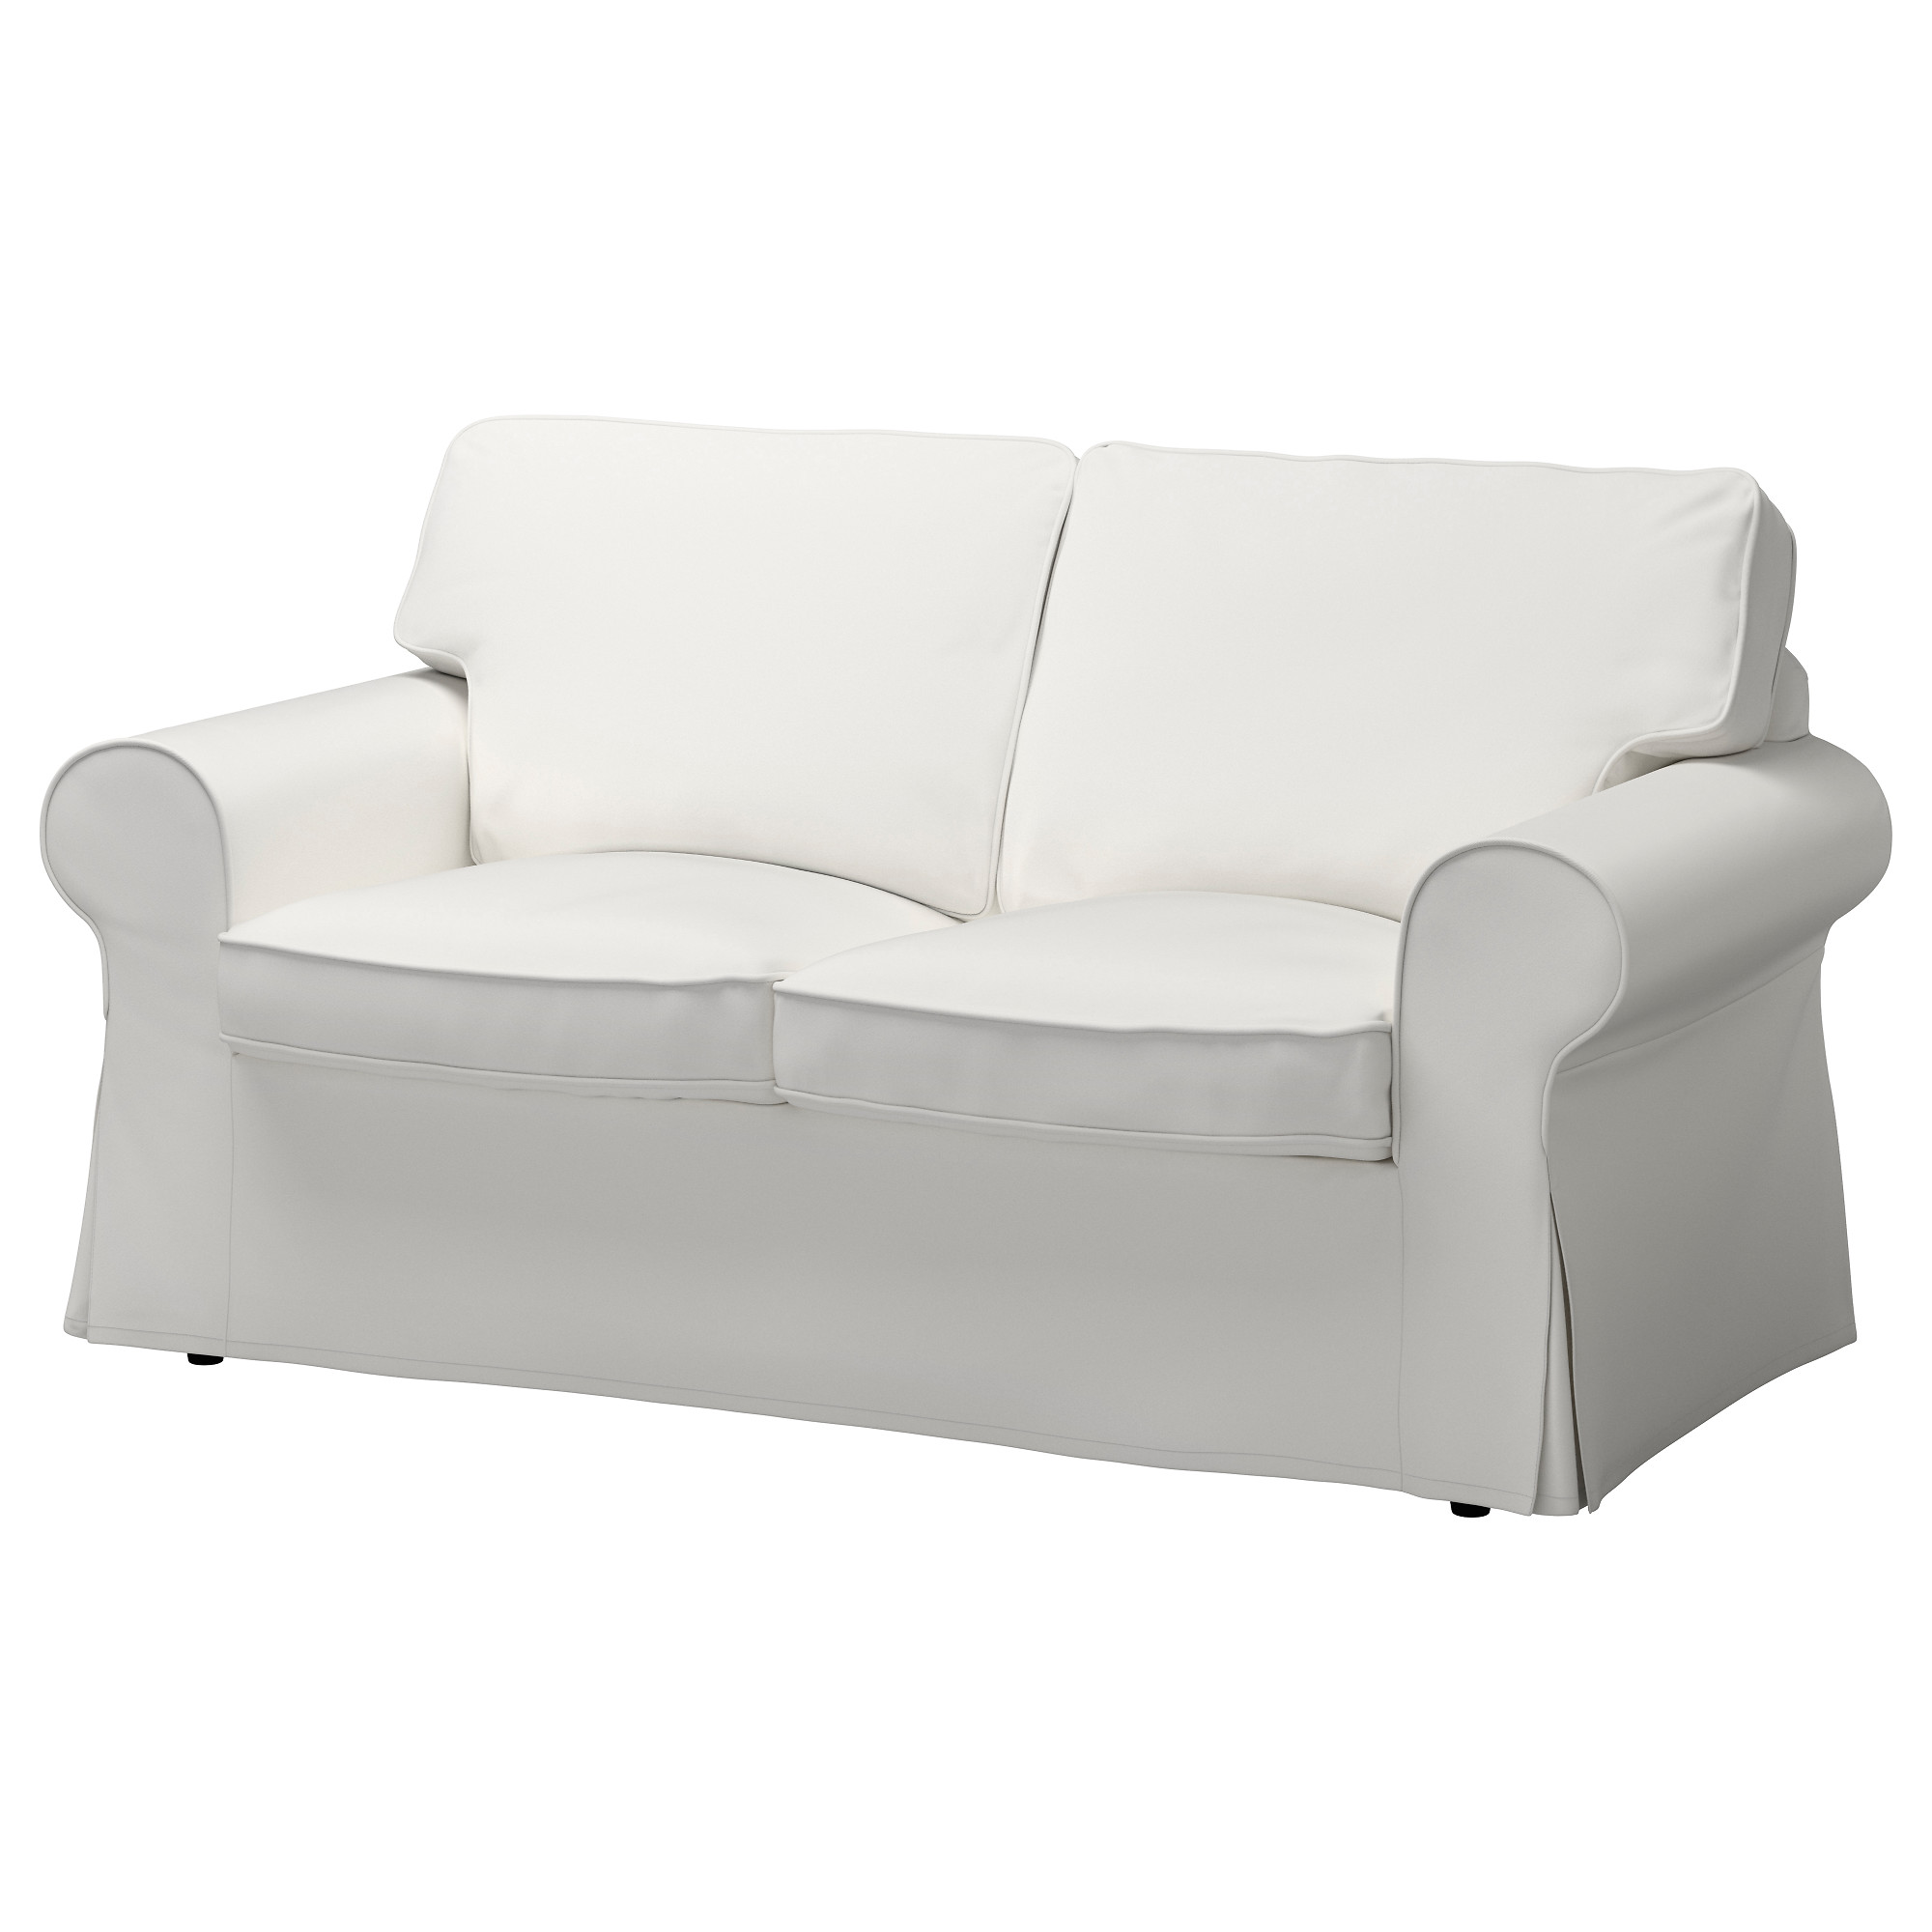 dealer product ashley mentor and chair store loveseat sw best furniture oh darcy